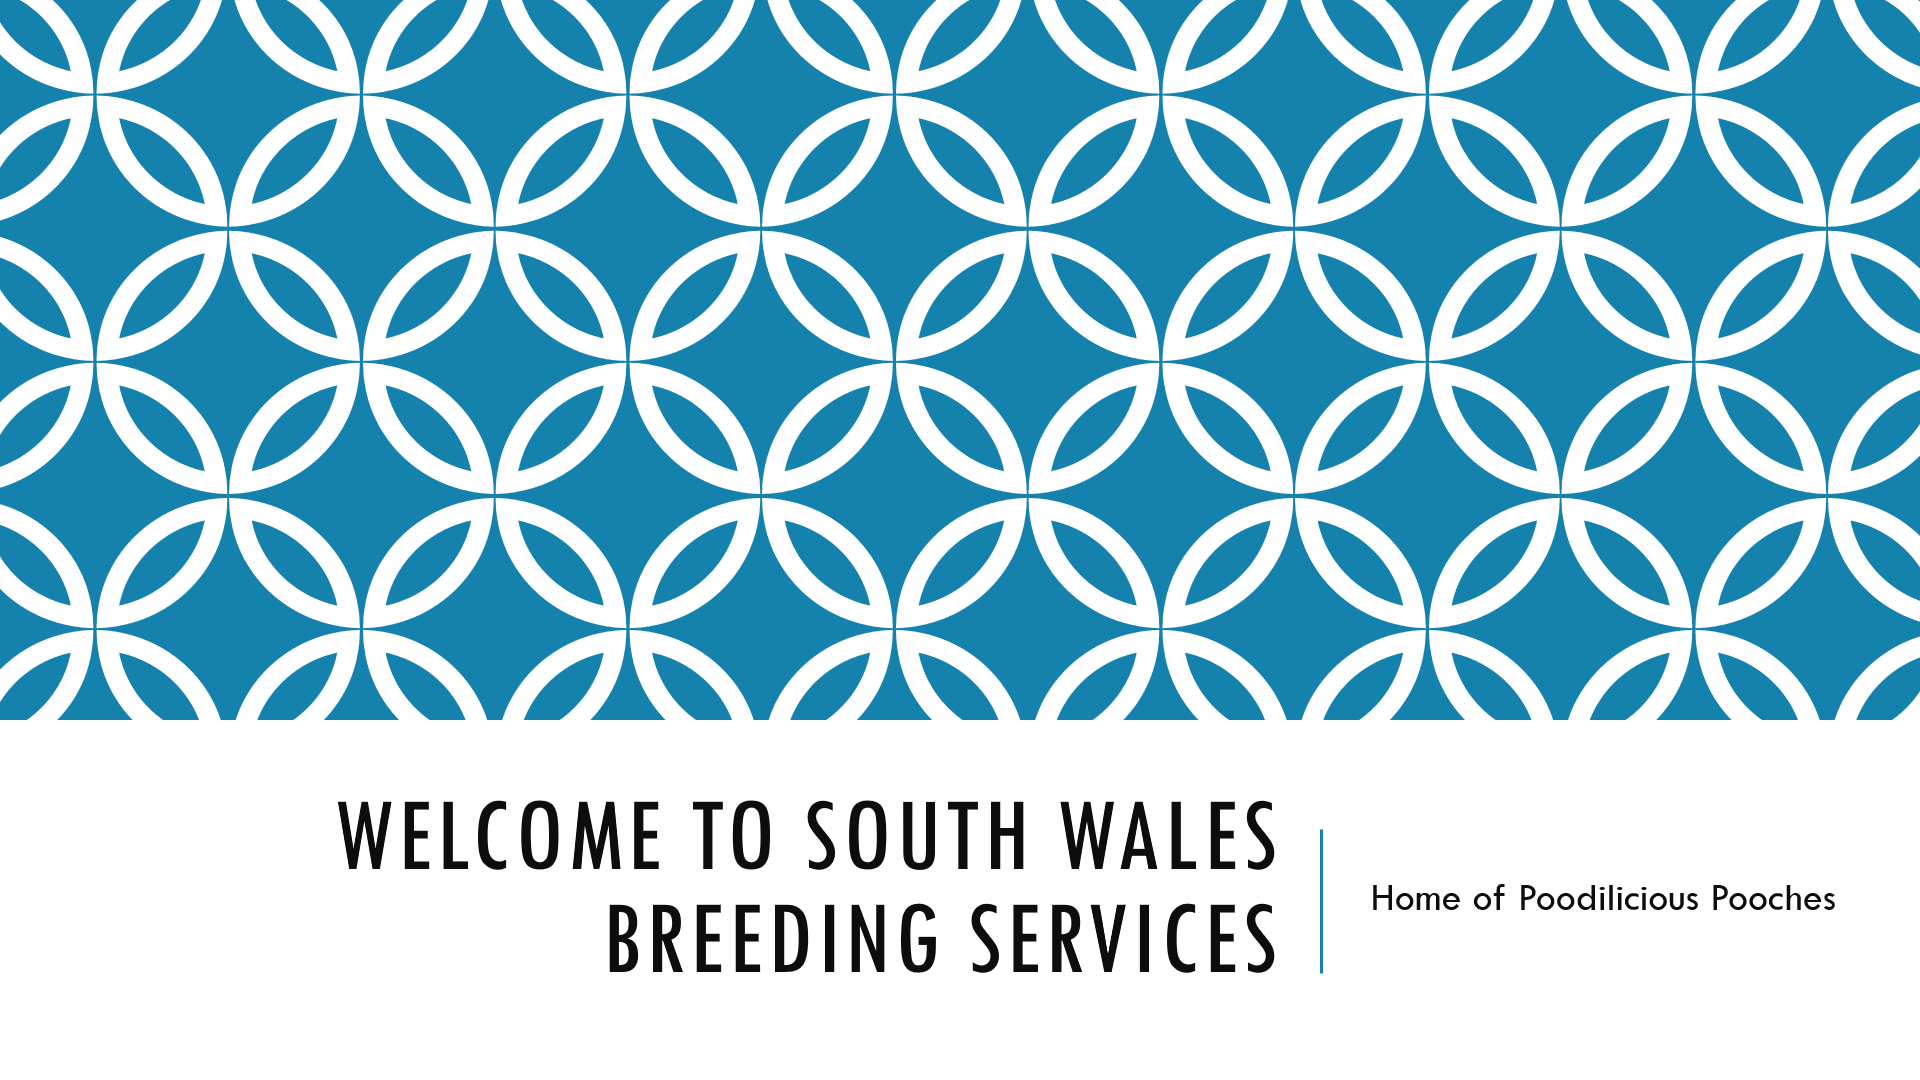 South Wales breeding services